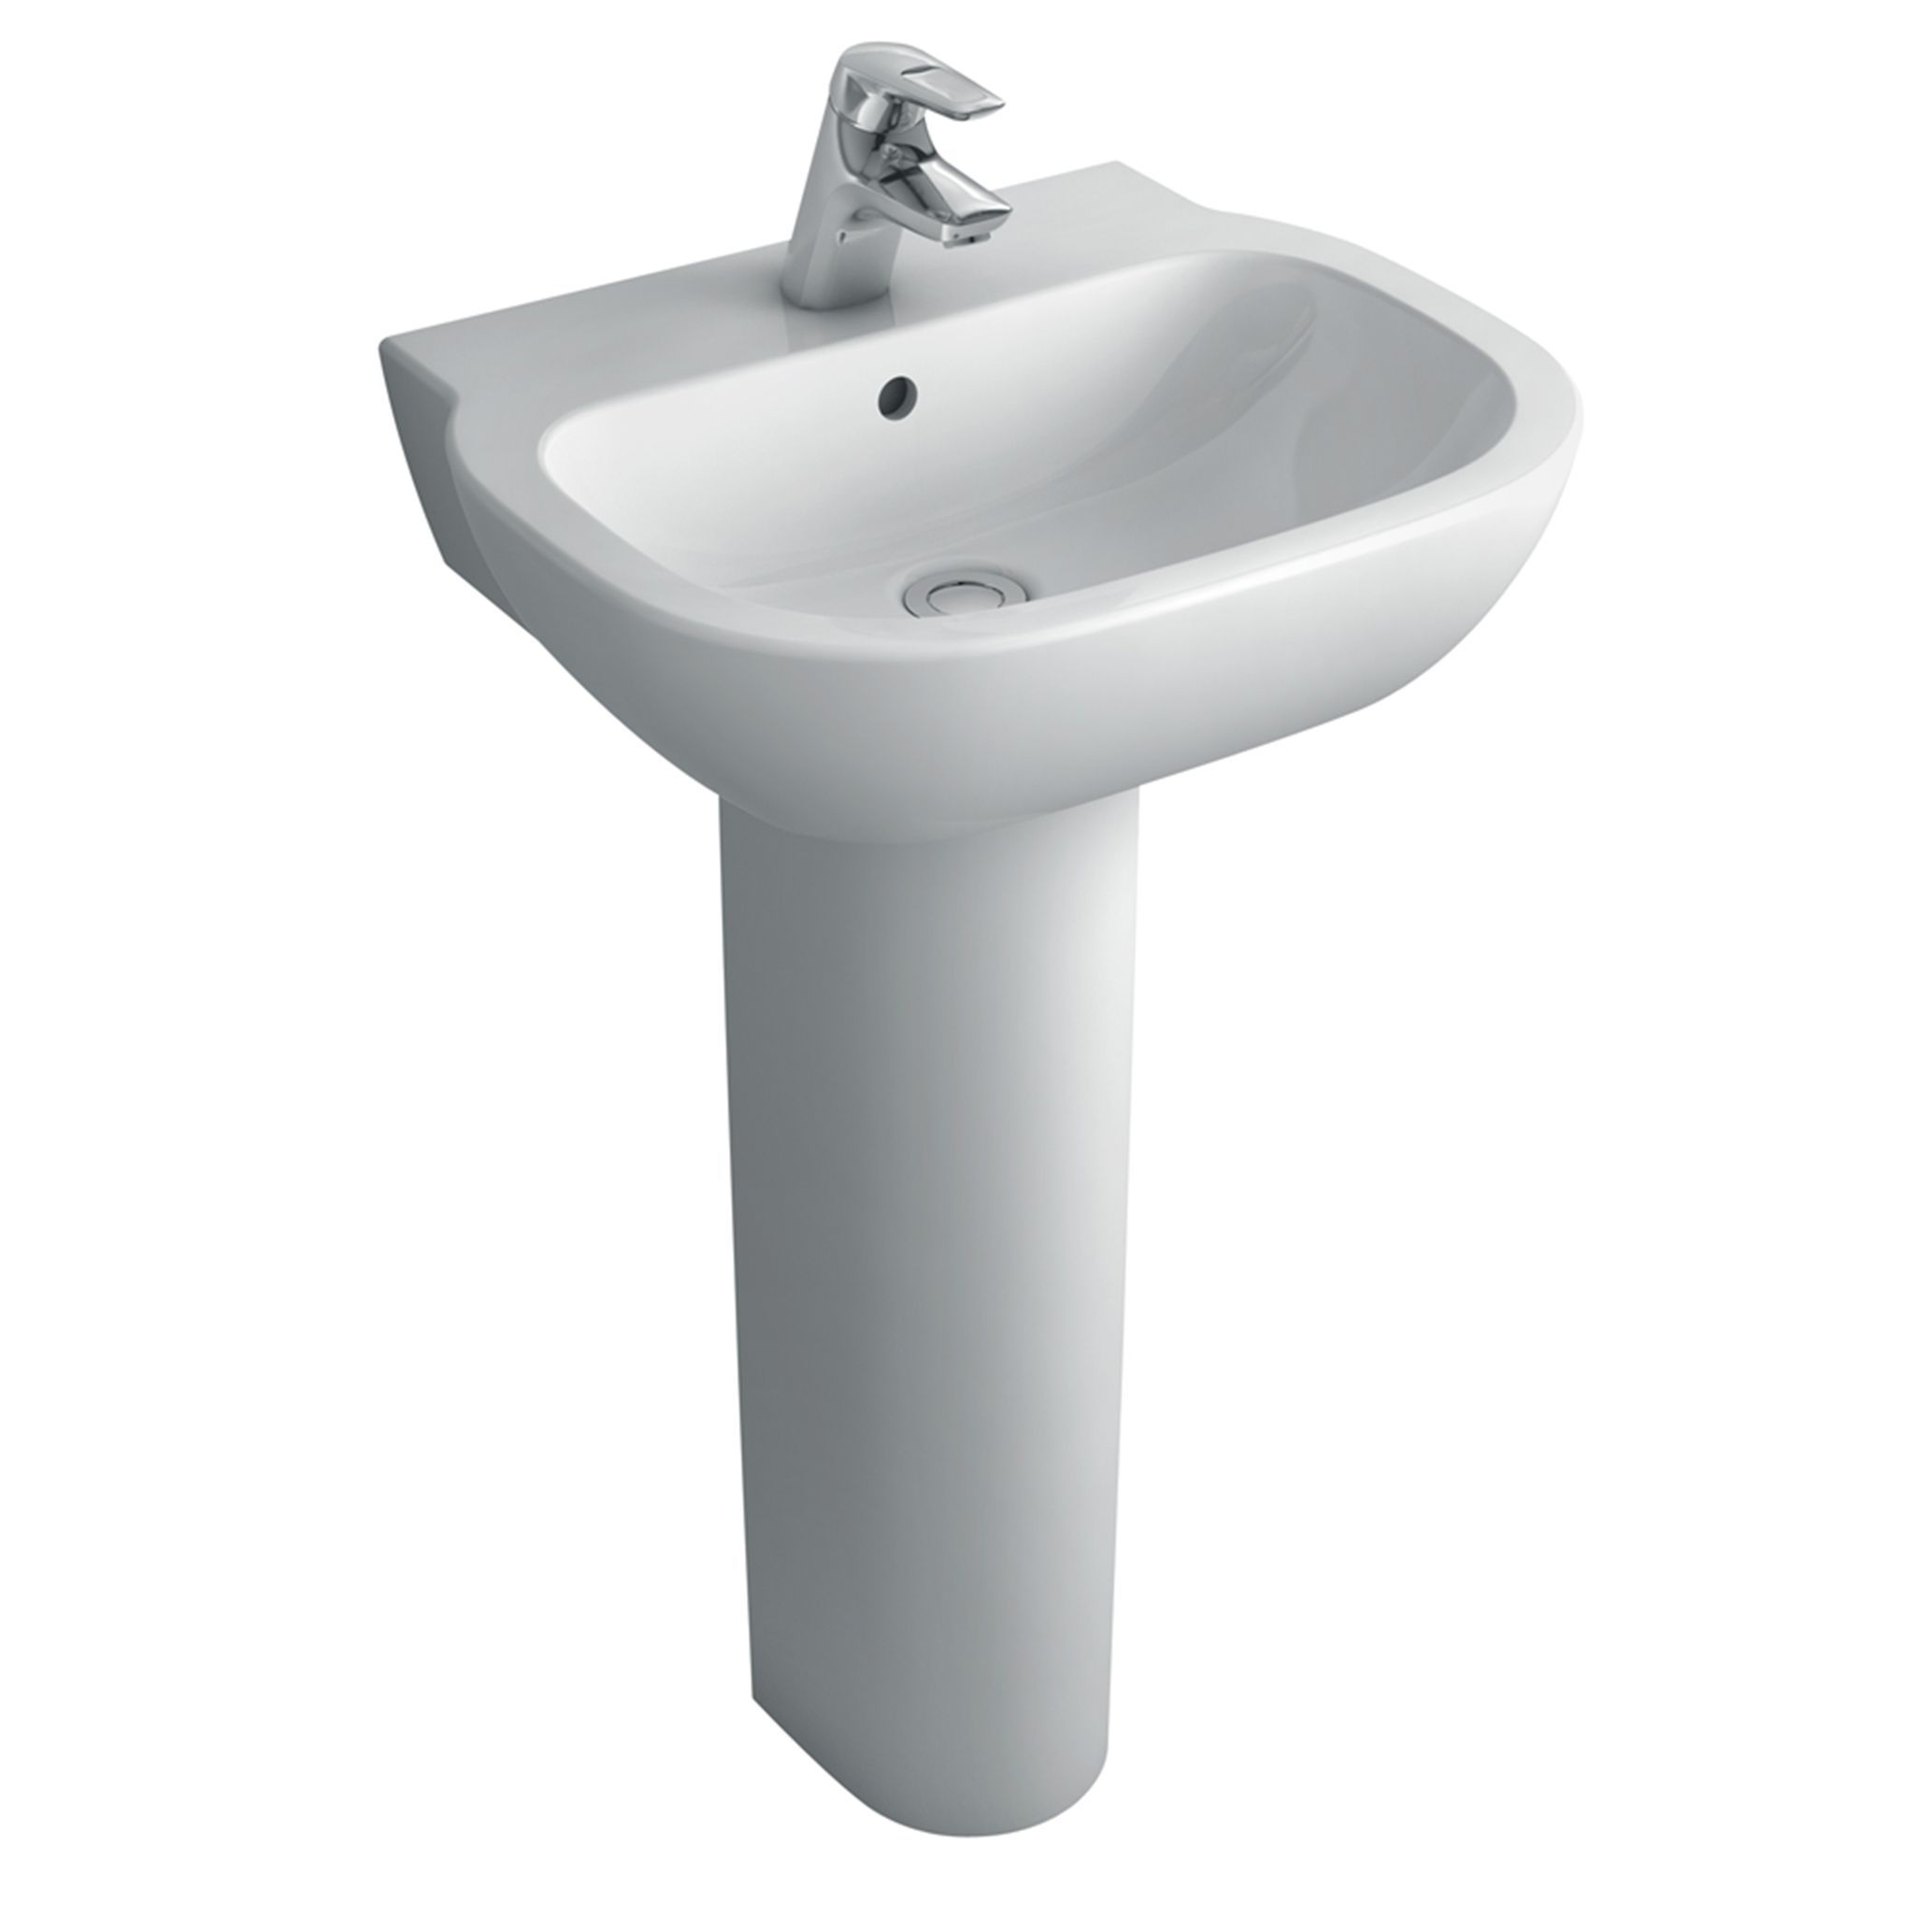 design interior sink with pedestal ideas home on awesome room metal cool new base white modern